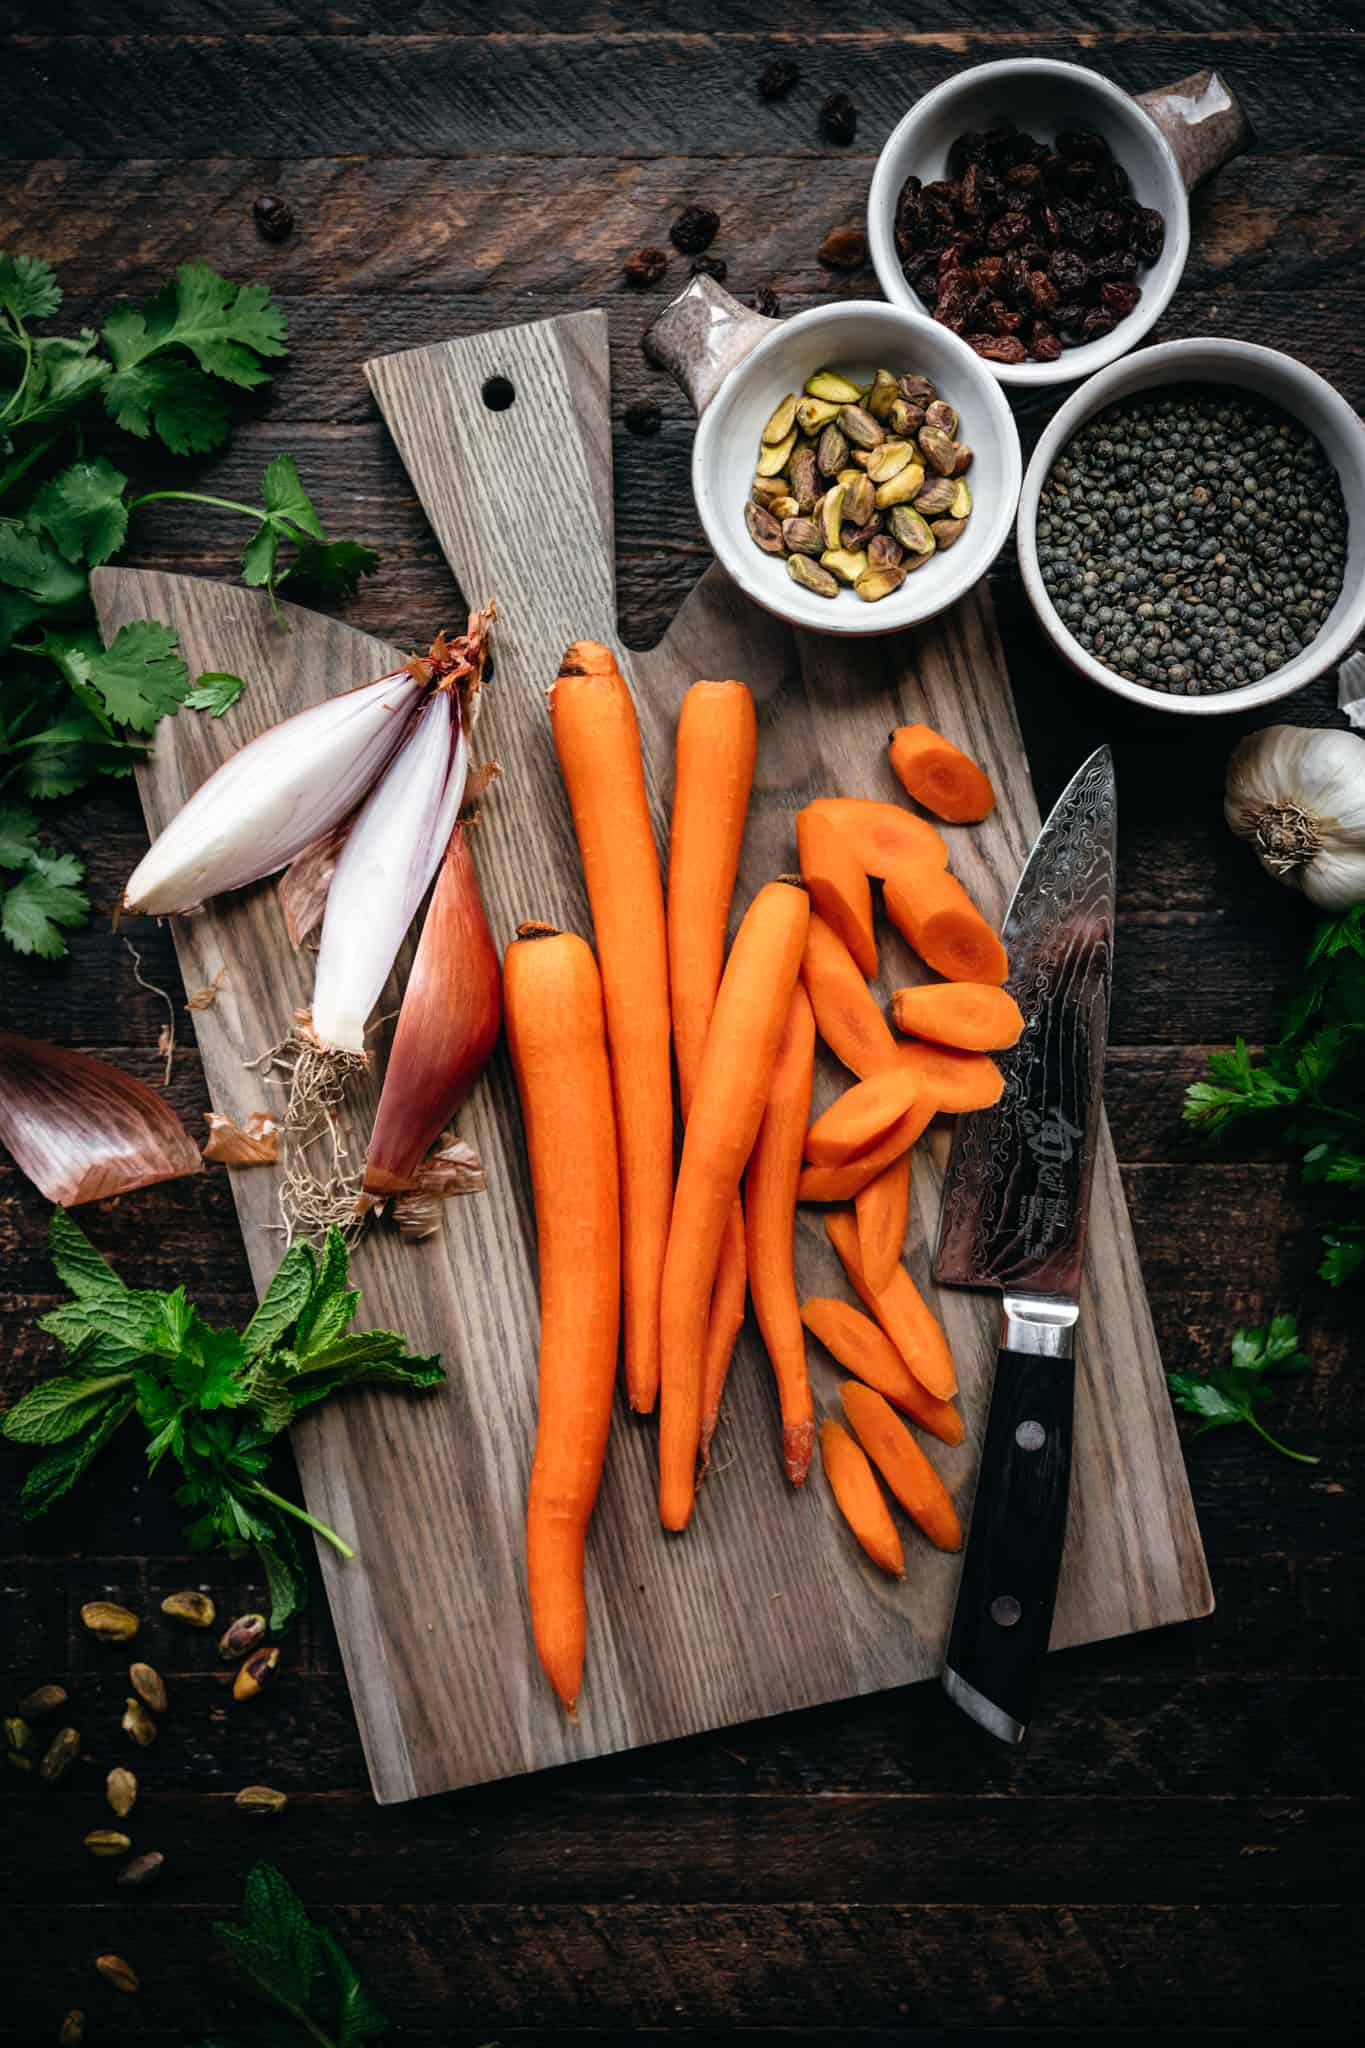 overhead view of ingredients for vegan lentil and carrot salad on cutting board